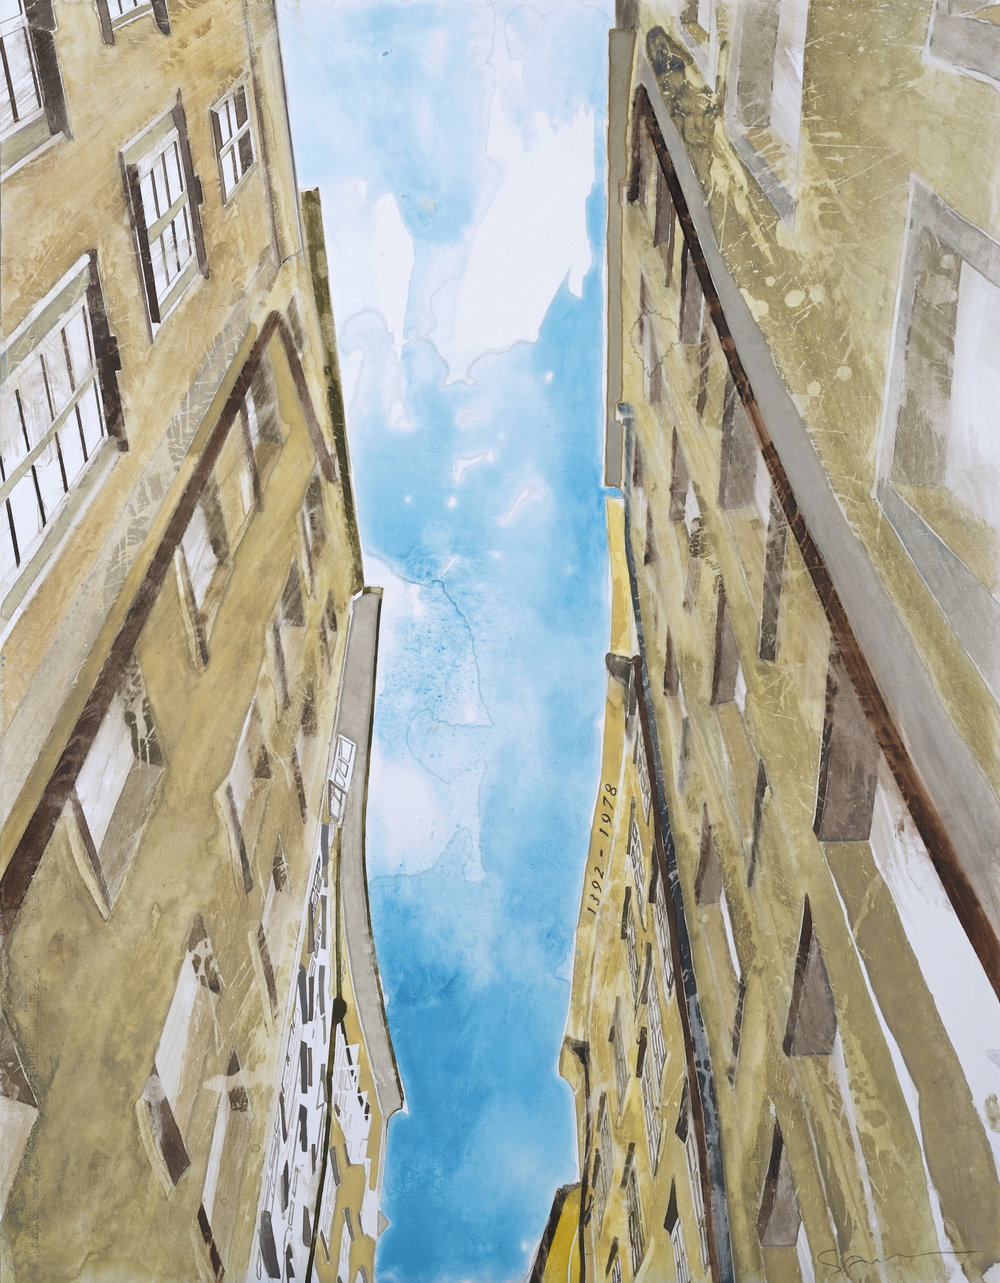 Hans Guck in die luft in Salzburg, watercolor, 65 x 51 cm, 25.5 x 20 in, 2016